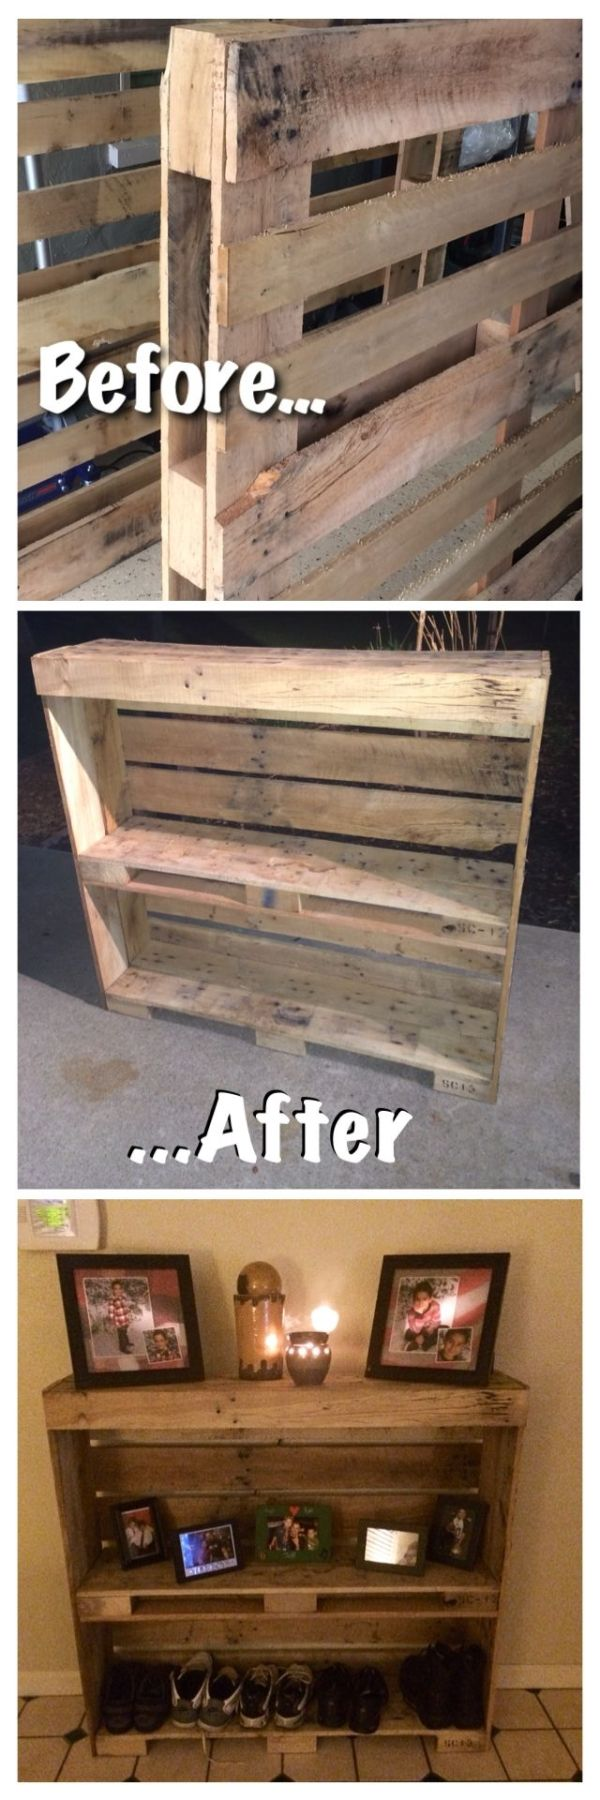 55 creative diy pallet project ideas tutorials 2017 easy pallet storage for shoes and other things solutioingenieria Image collections